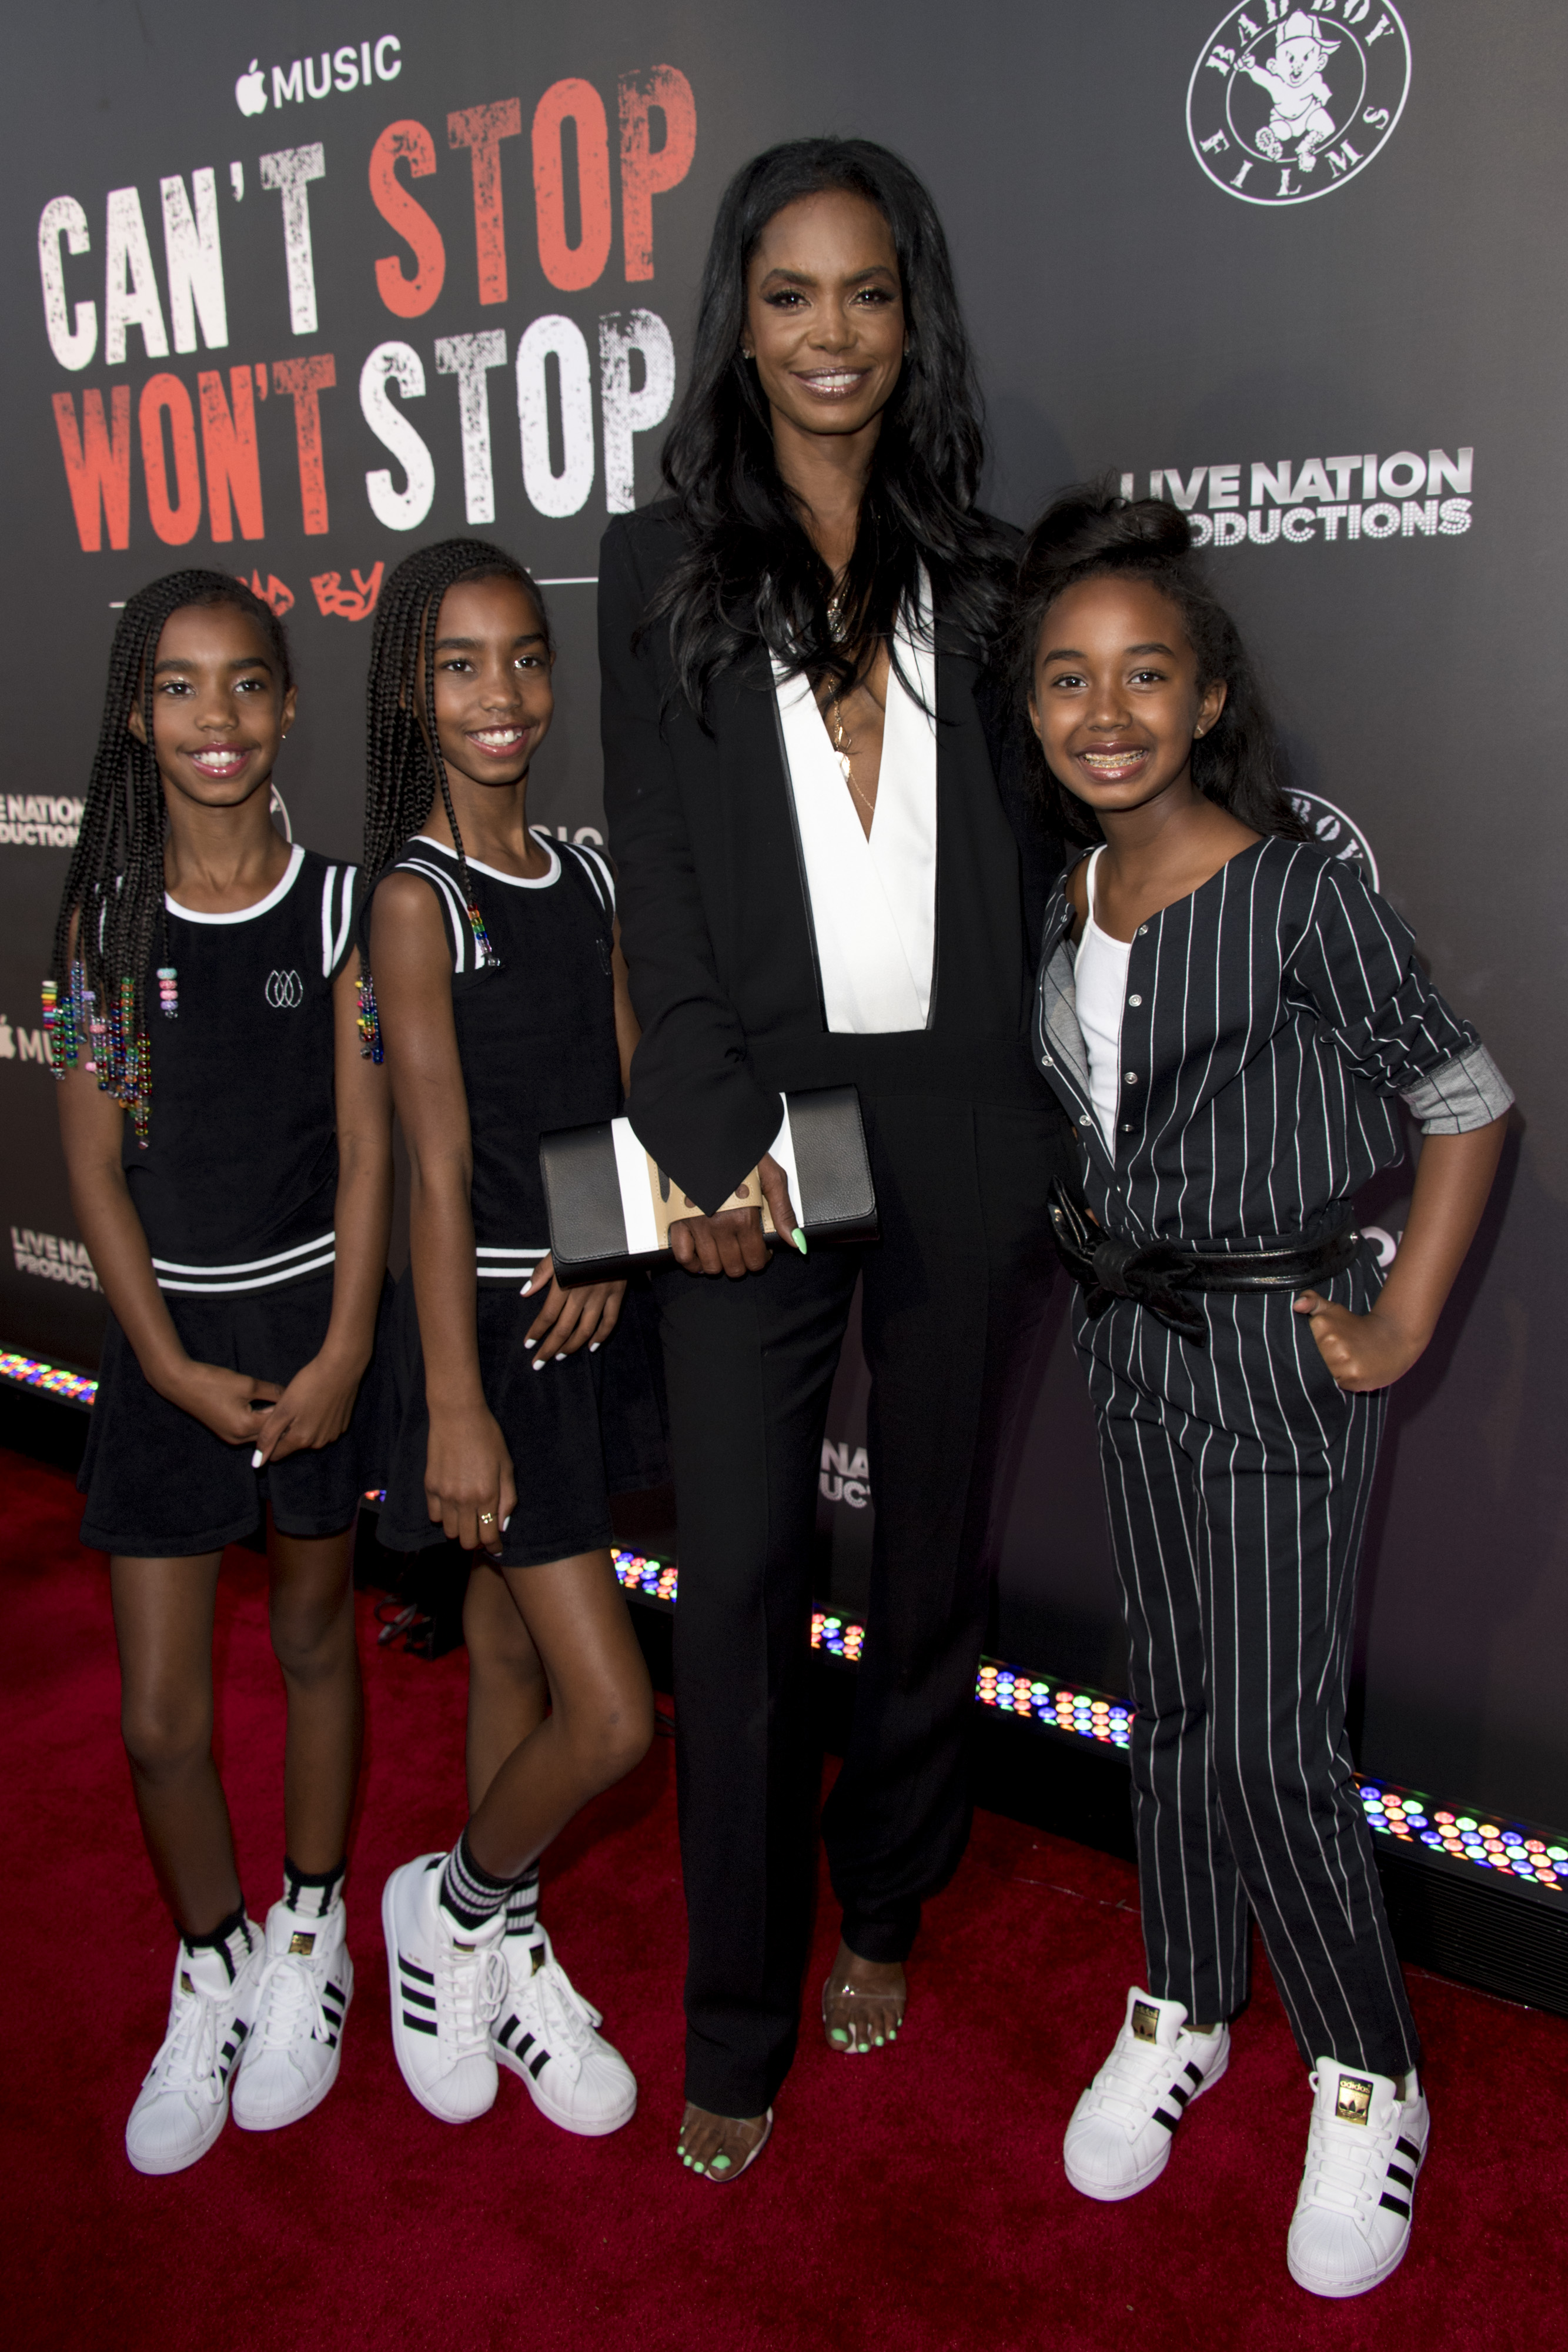 Los Angeles premiere of 'Can't Stop, Won't Stop: The Bad Boy Story'